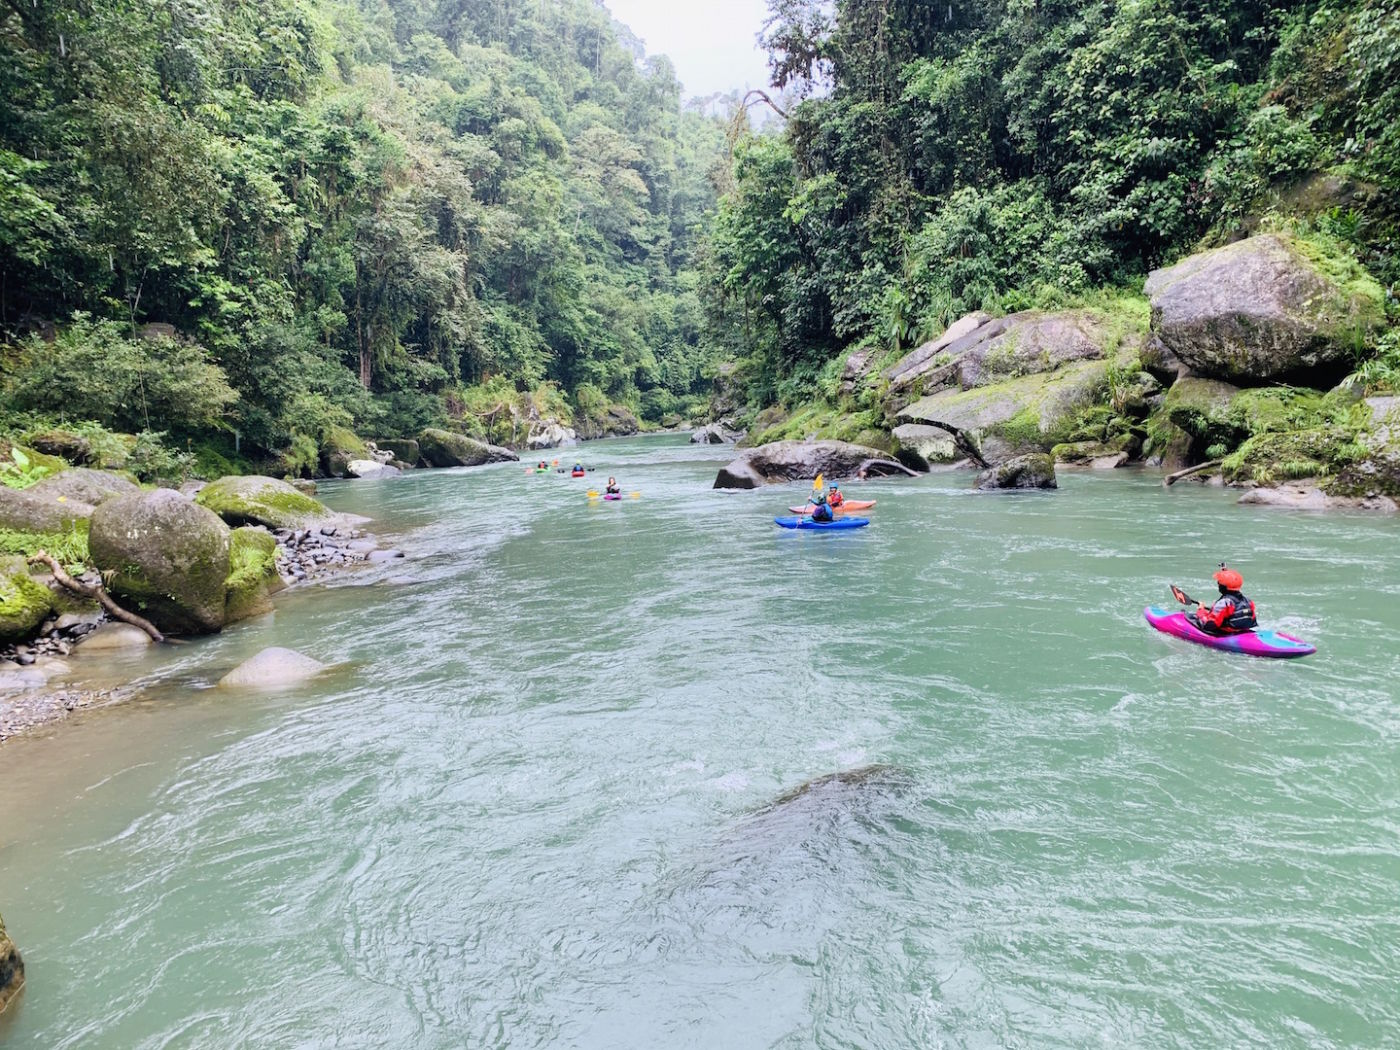 anna levesque leading a group of whitewater kayakers down the pacuare river in costa rica